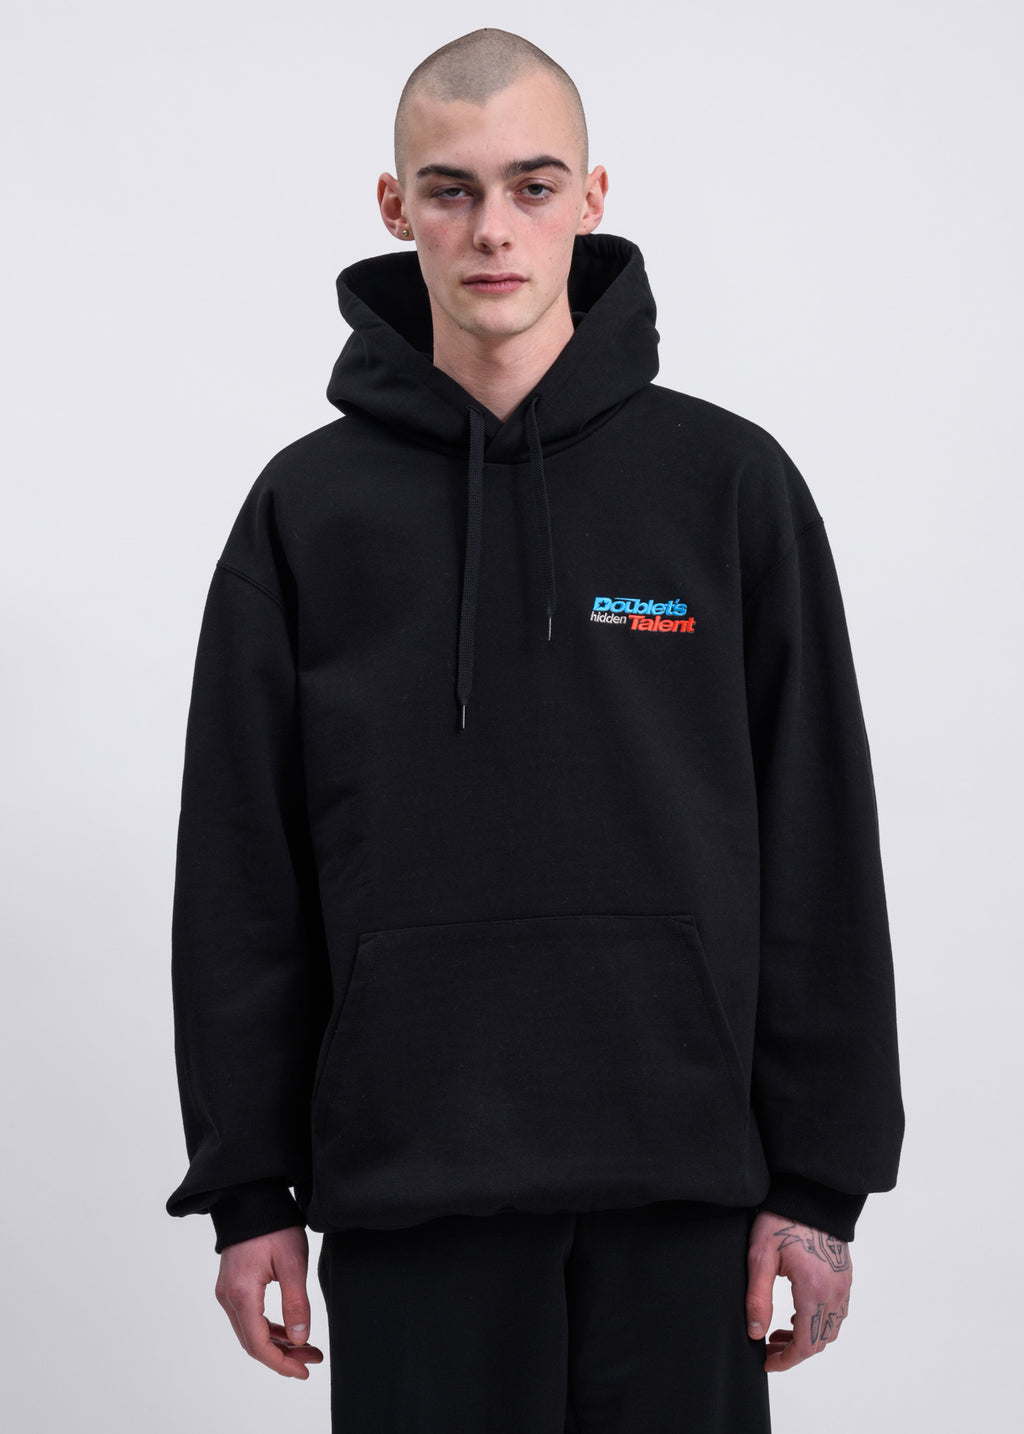 Black Hidden Chaos Embroidery Hoodies